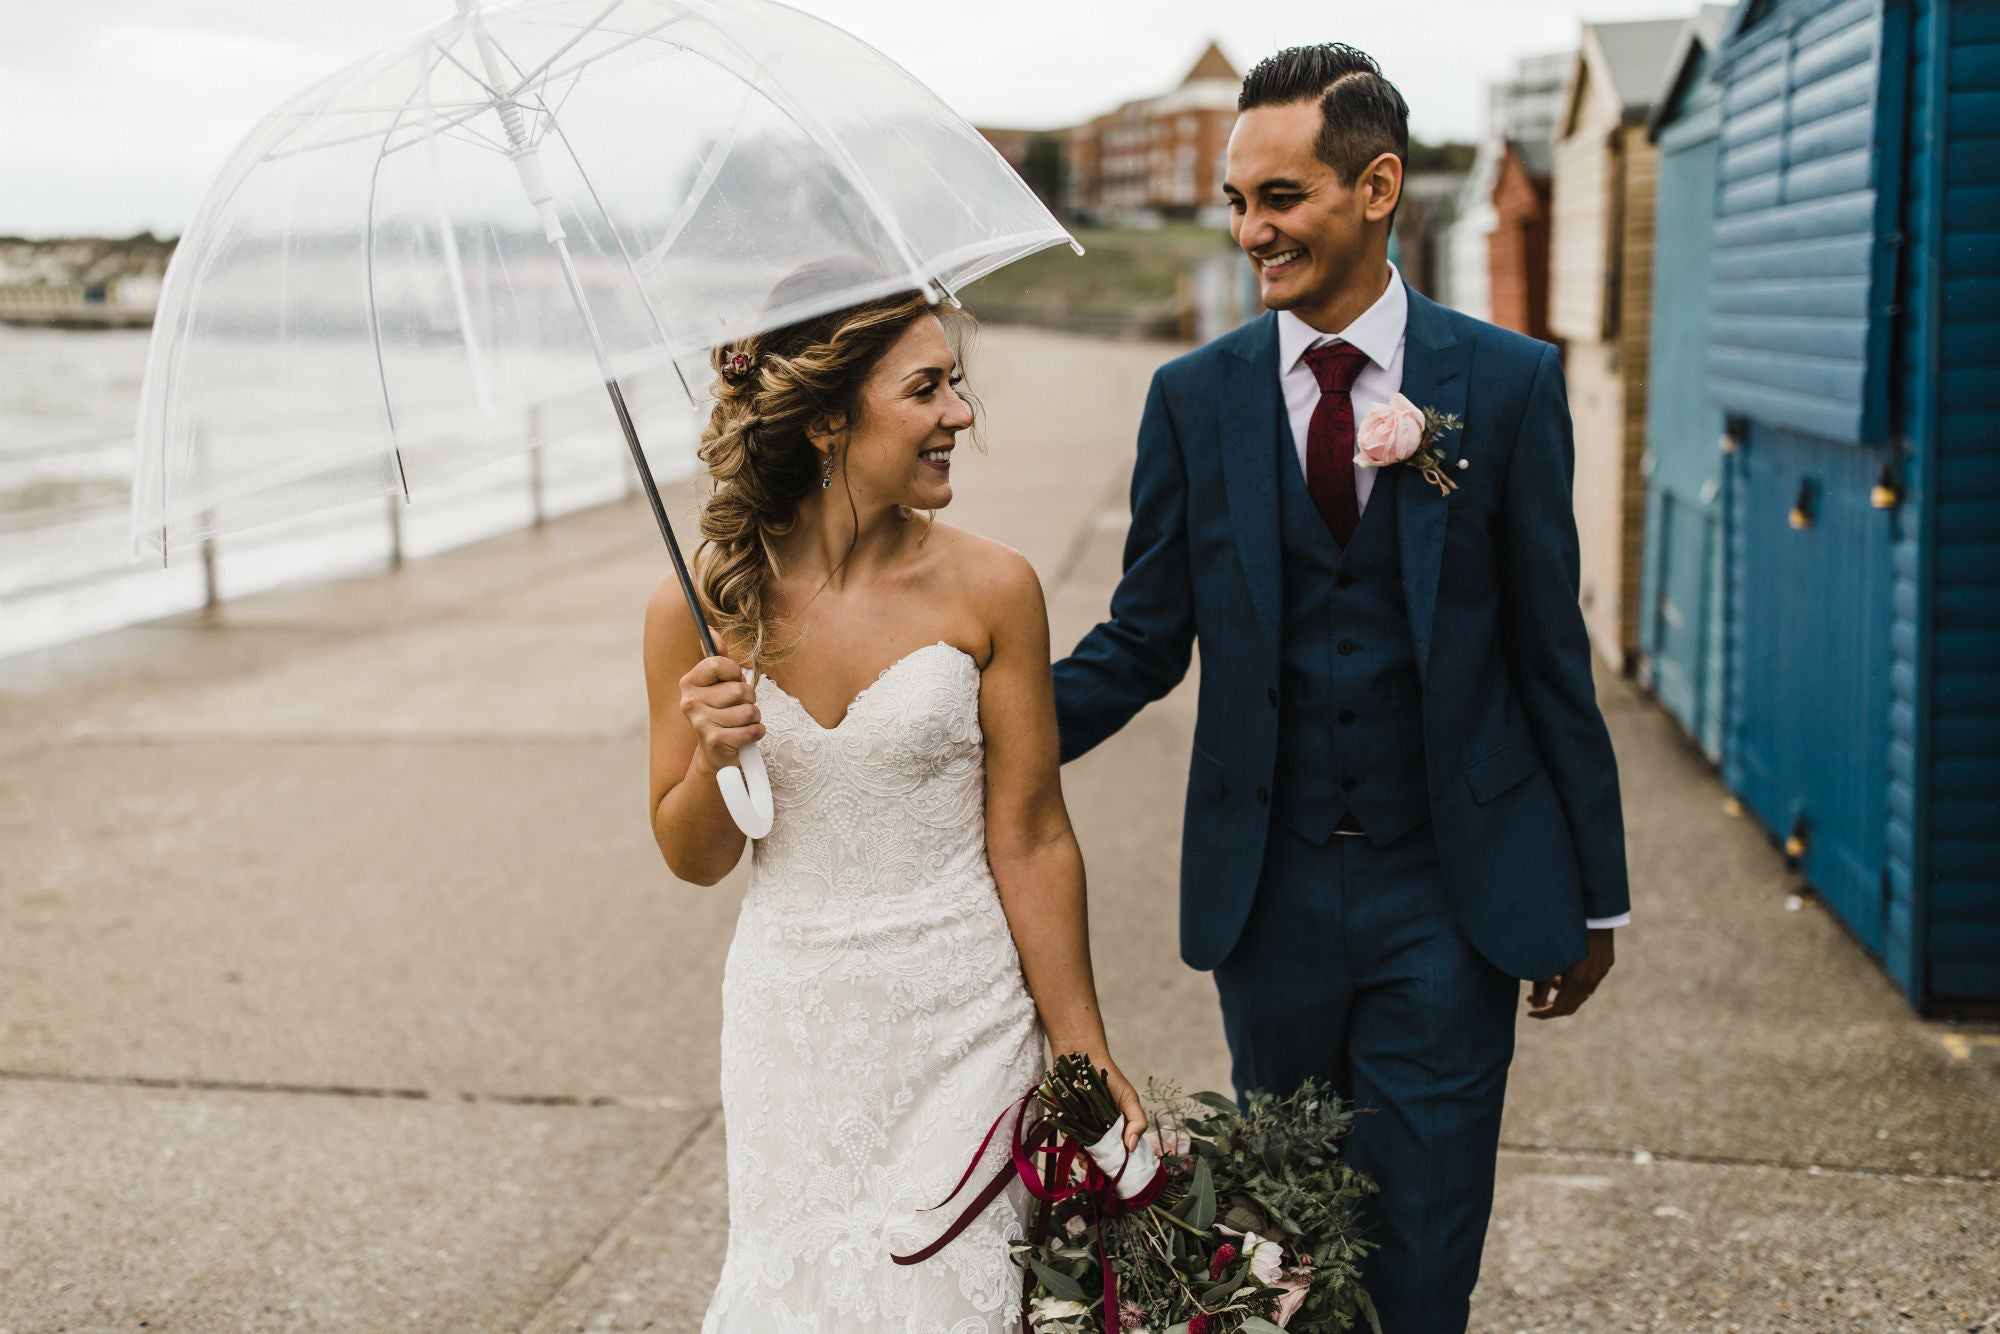 wedding dress umbrella